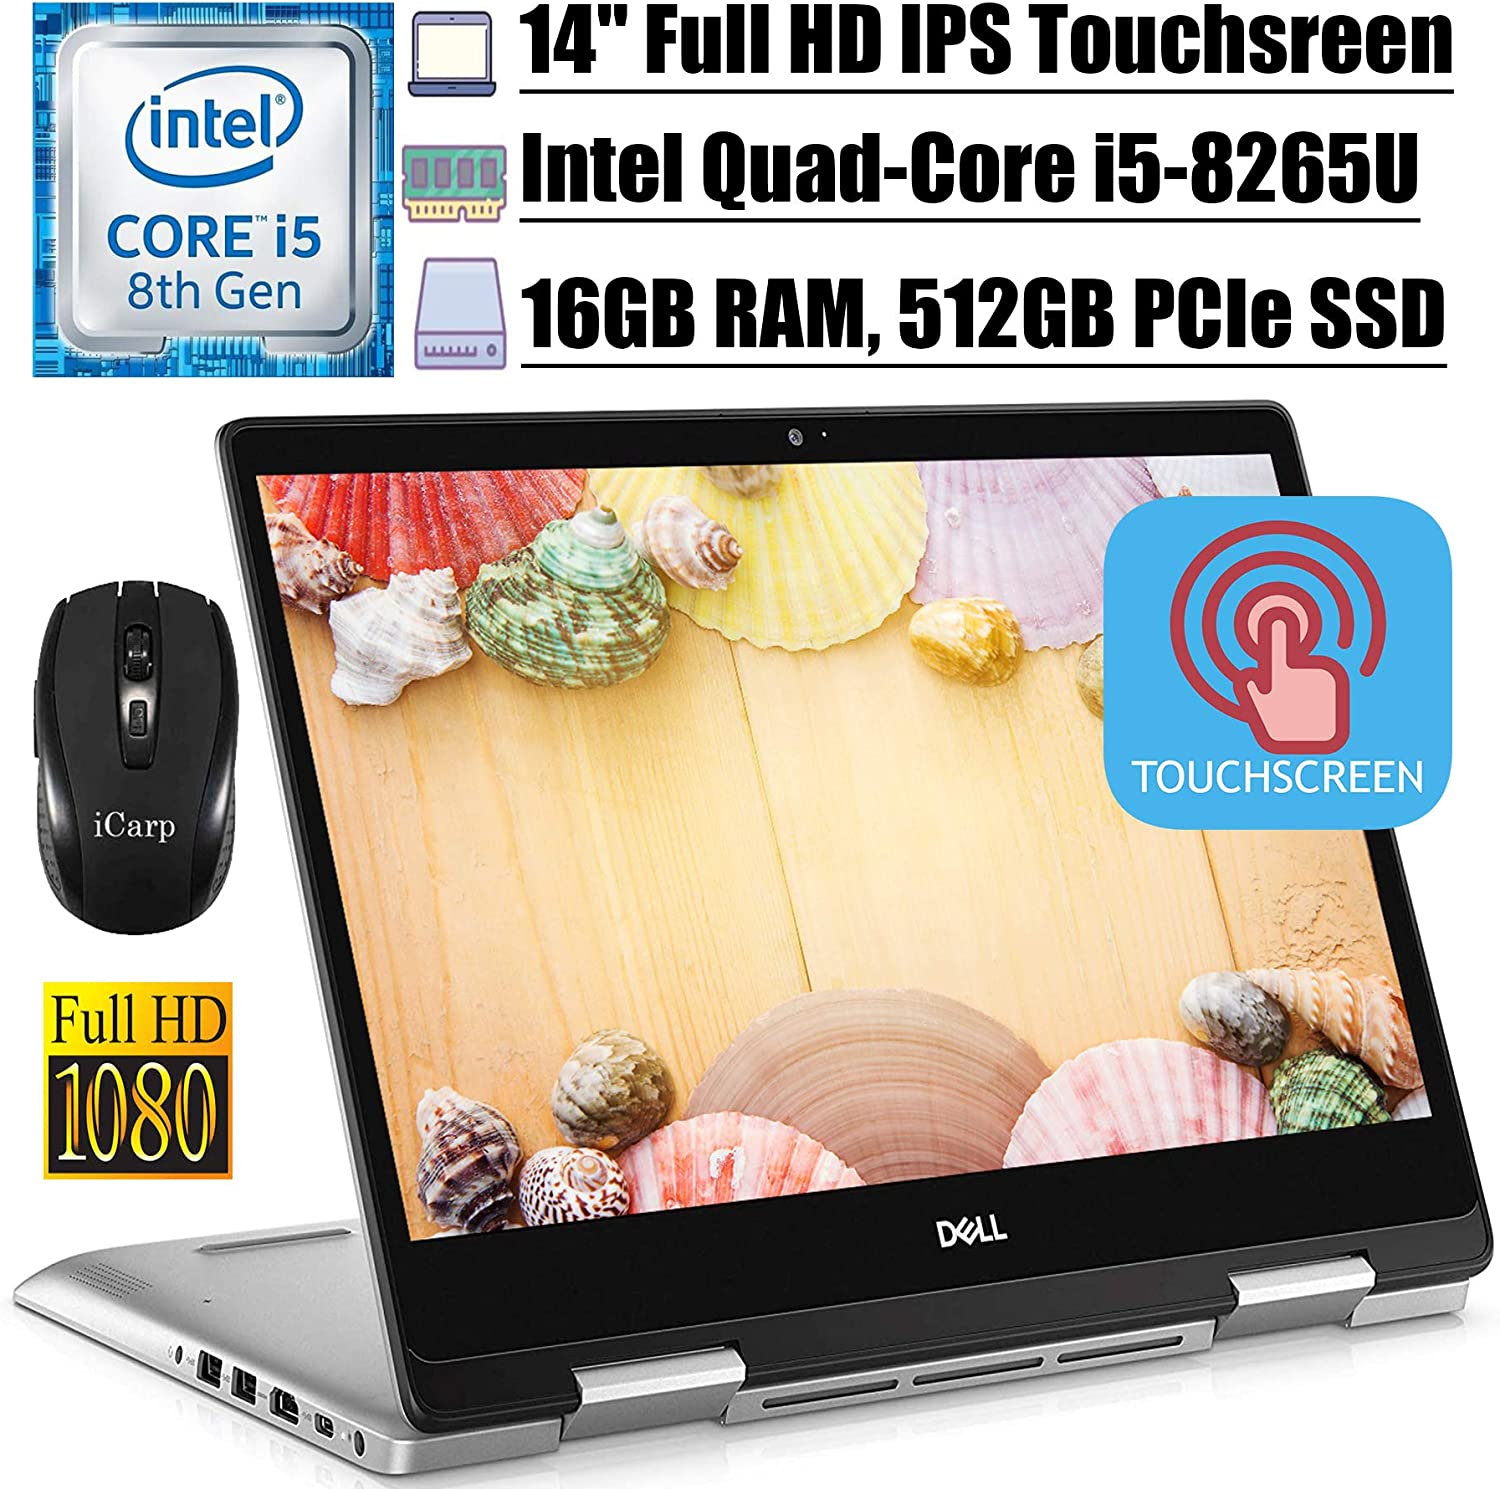 """2020 Flagship Dell Inspiron 14 5000 5482 Convertible 2-in-1 Laptop14"""" FHD IPS Touchscreen Intel 4-Core i5-8265U (Beatsi7-7500U) 16GB DDR4 512GB PCIe SSD Backlit KB Win 10 + iCarp Wireless Mouse"""